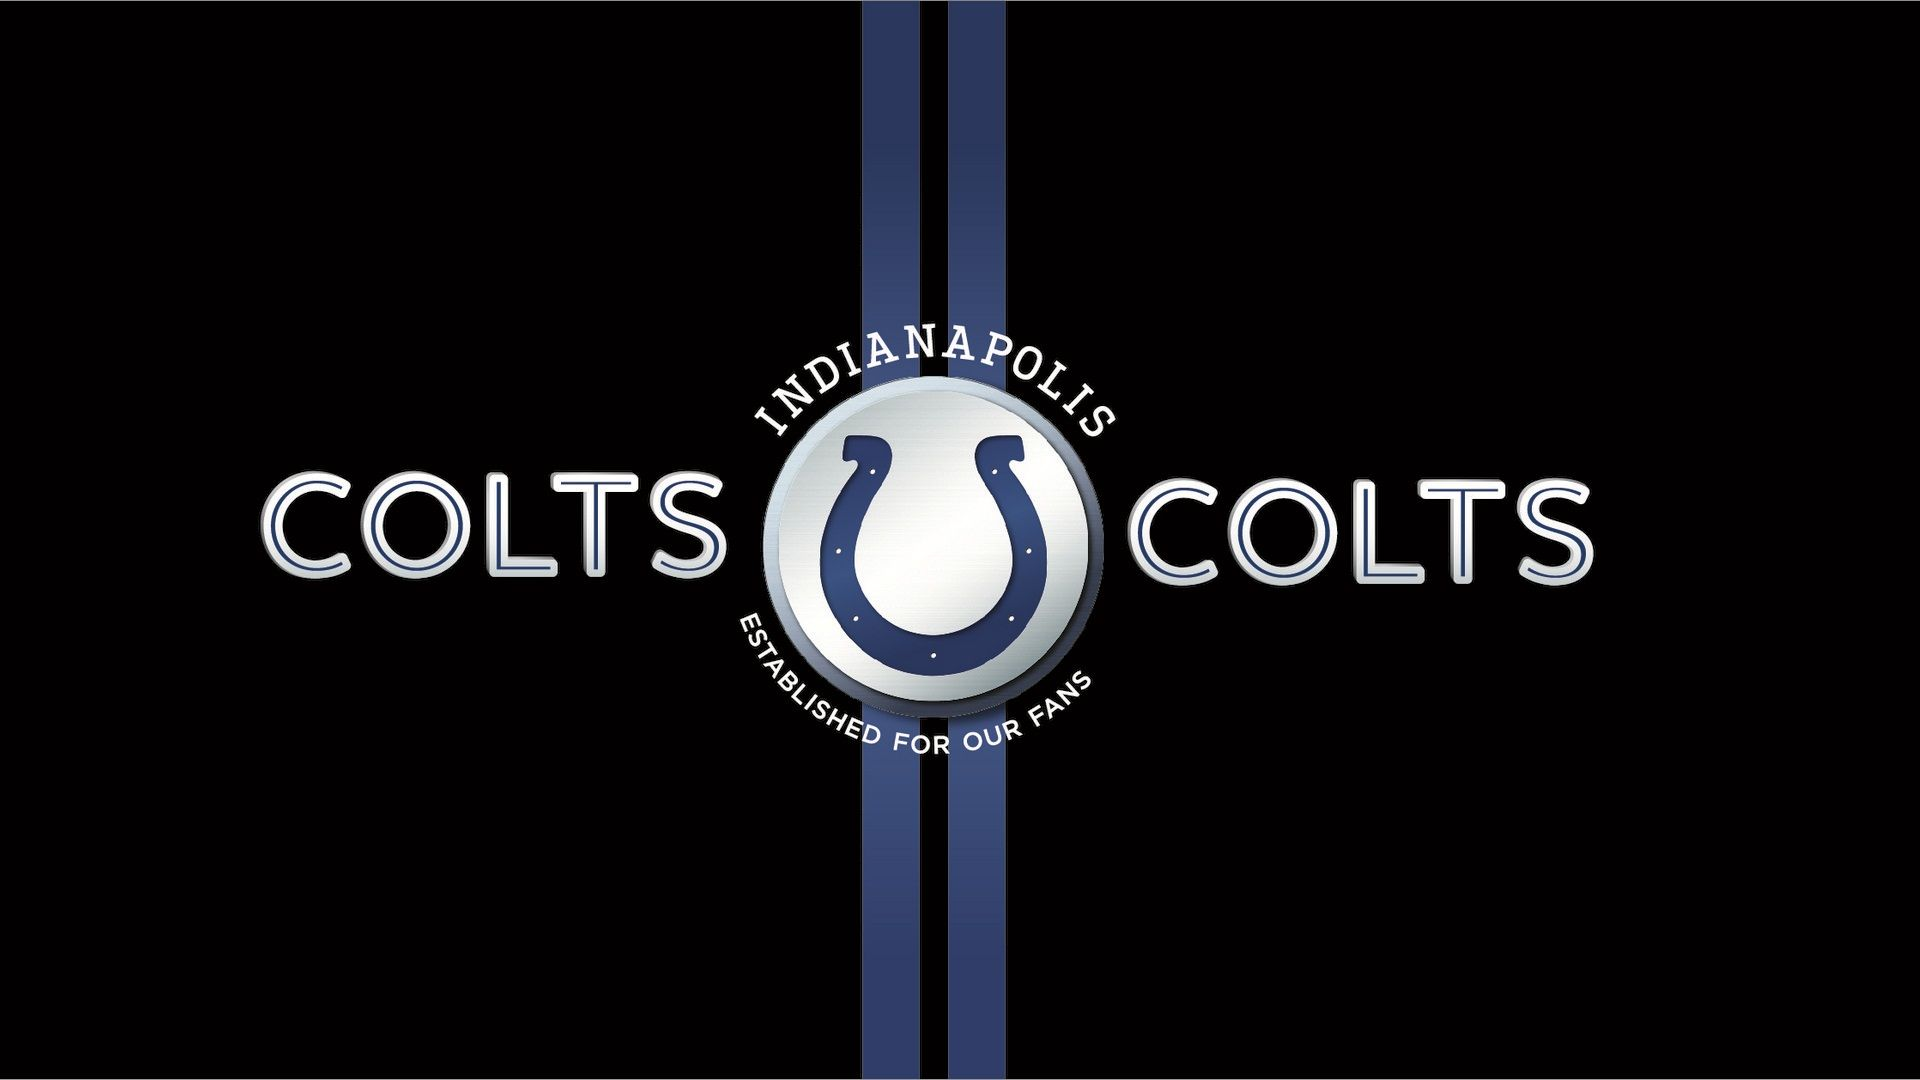 Indianapolis Colts Wallpaper Wallpapers Football wallpaper 1920x1080